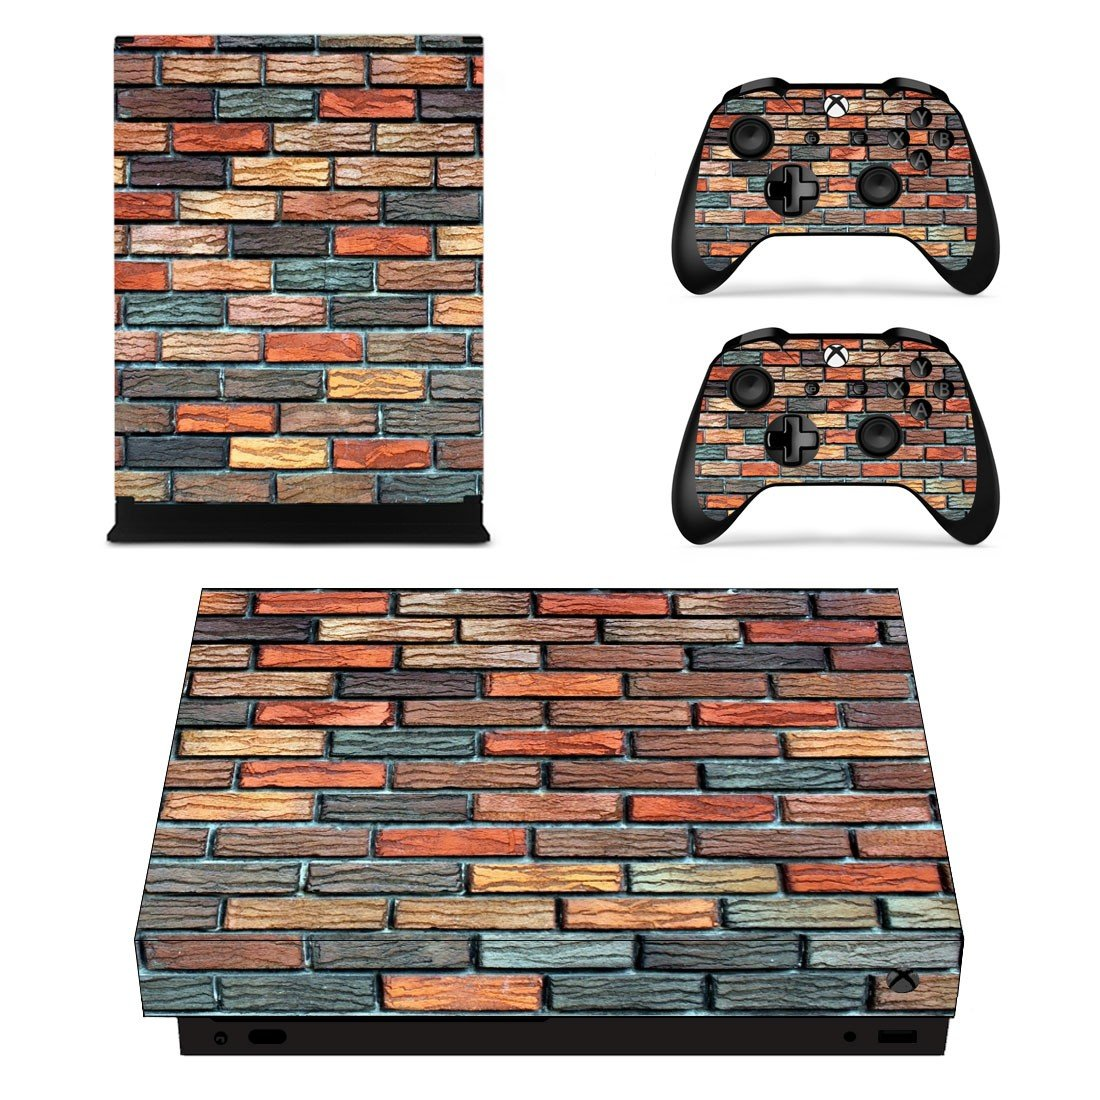 Multicolor Brick wall xbox one X skin decal for console and 2 controllers